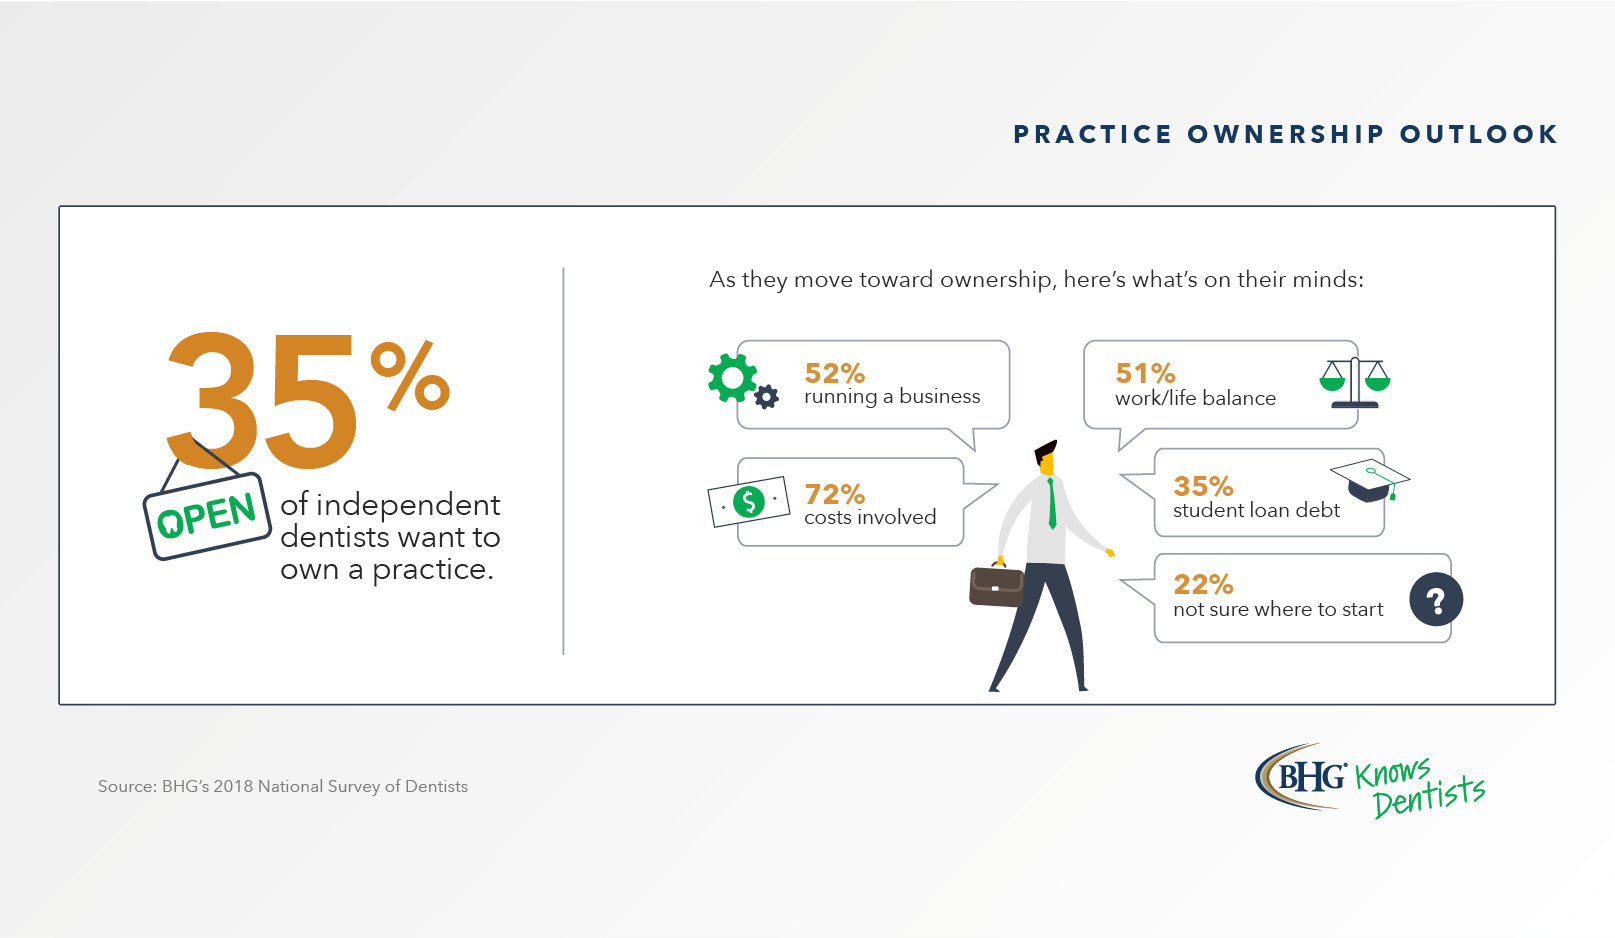 35% of independent dentists want to own a practice.